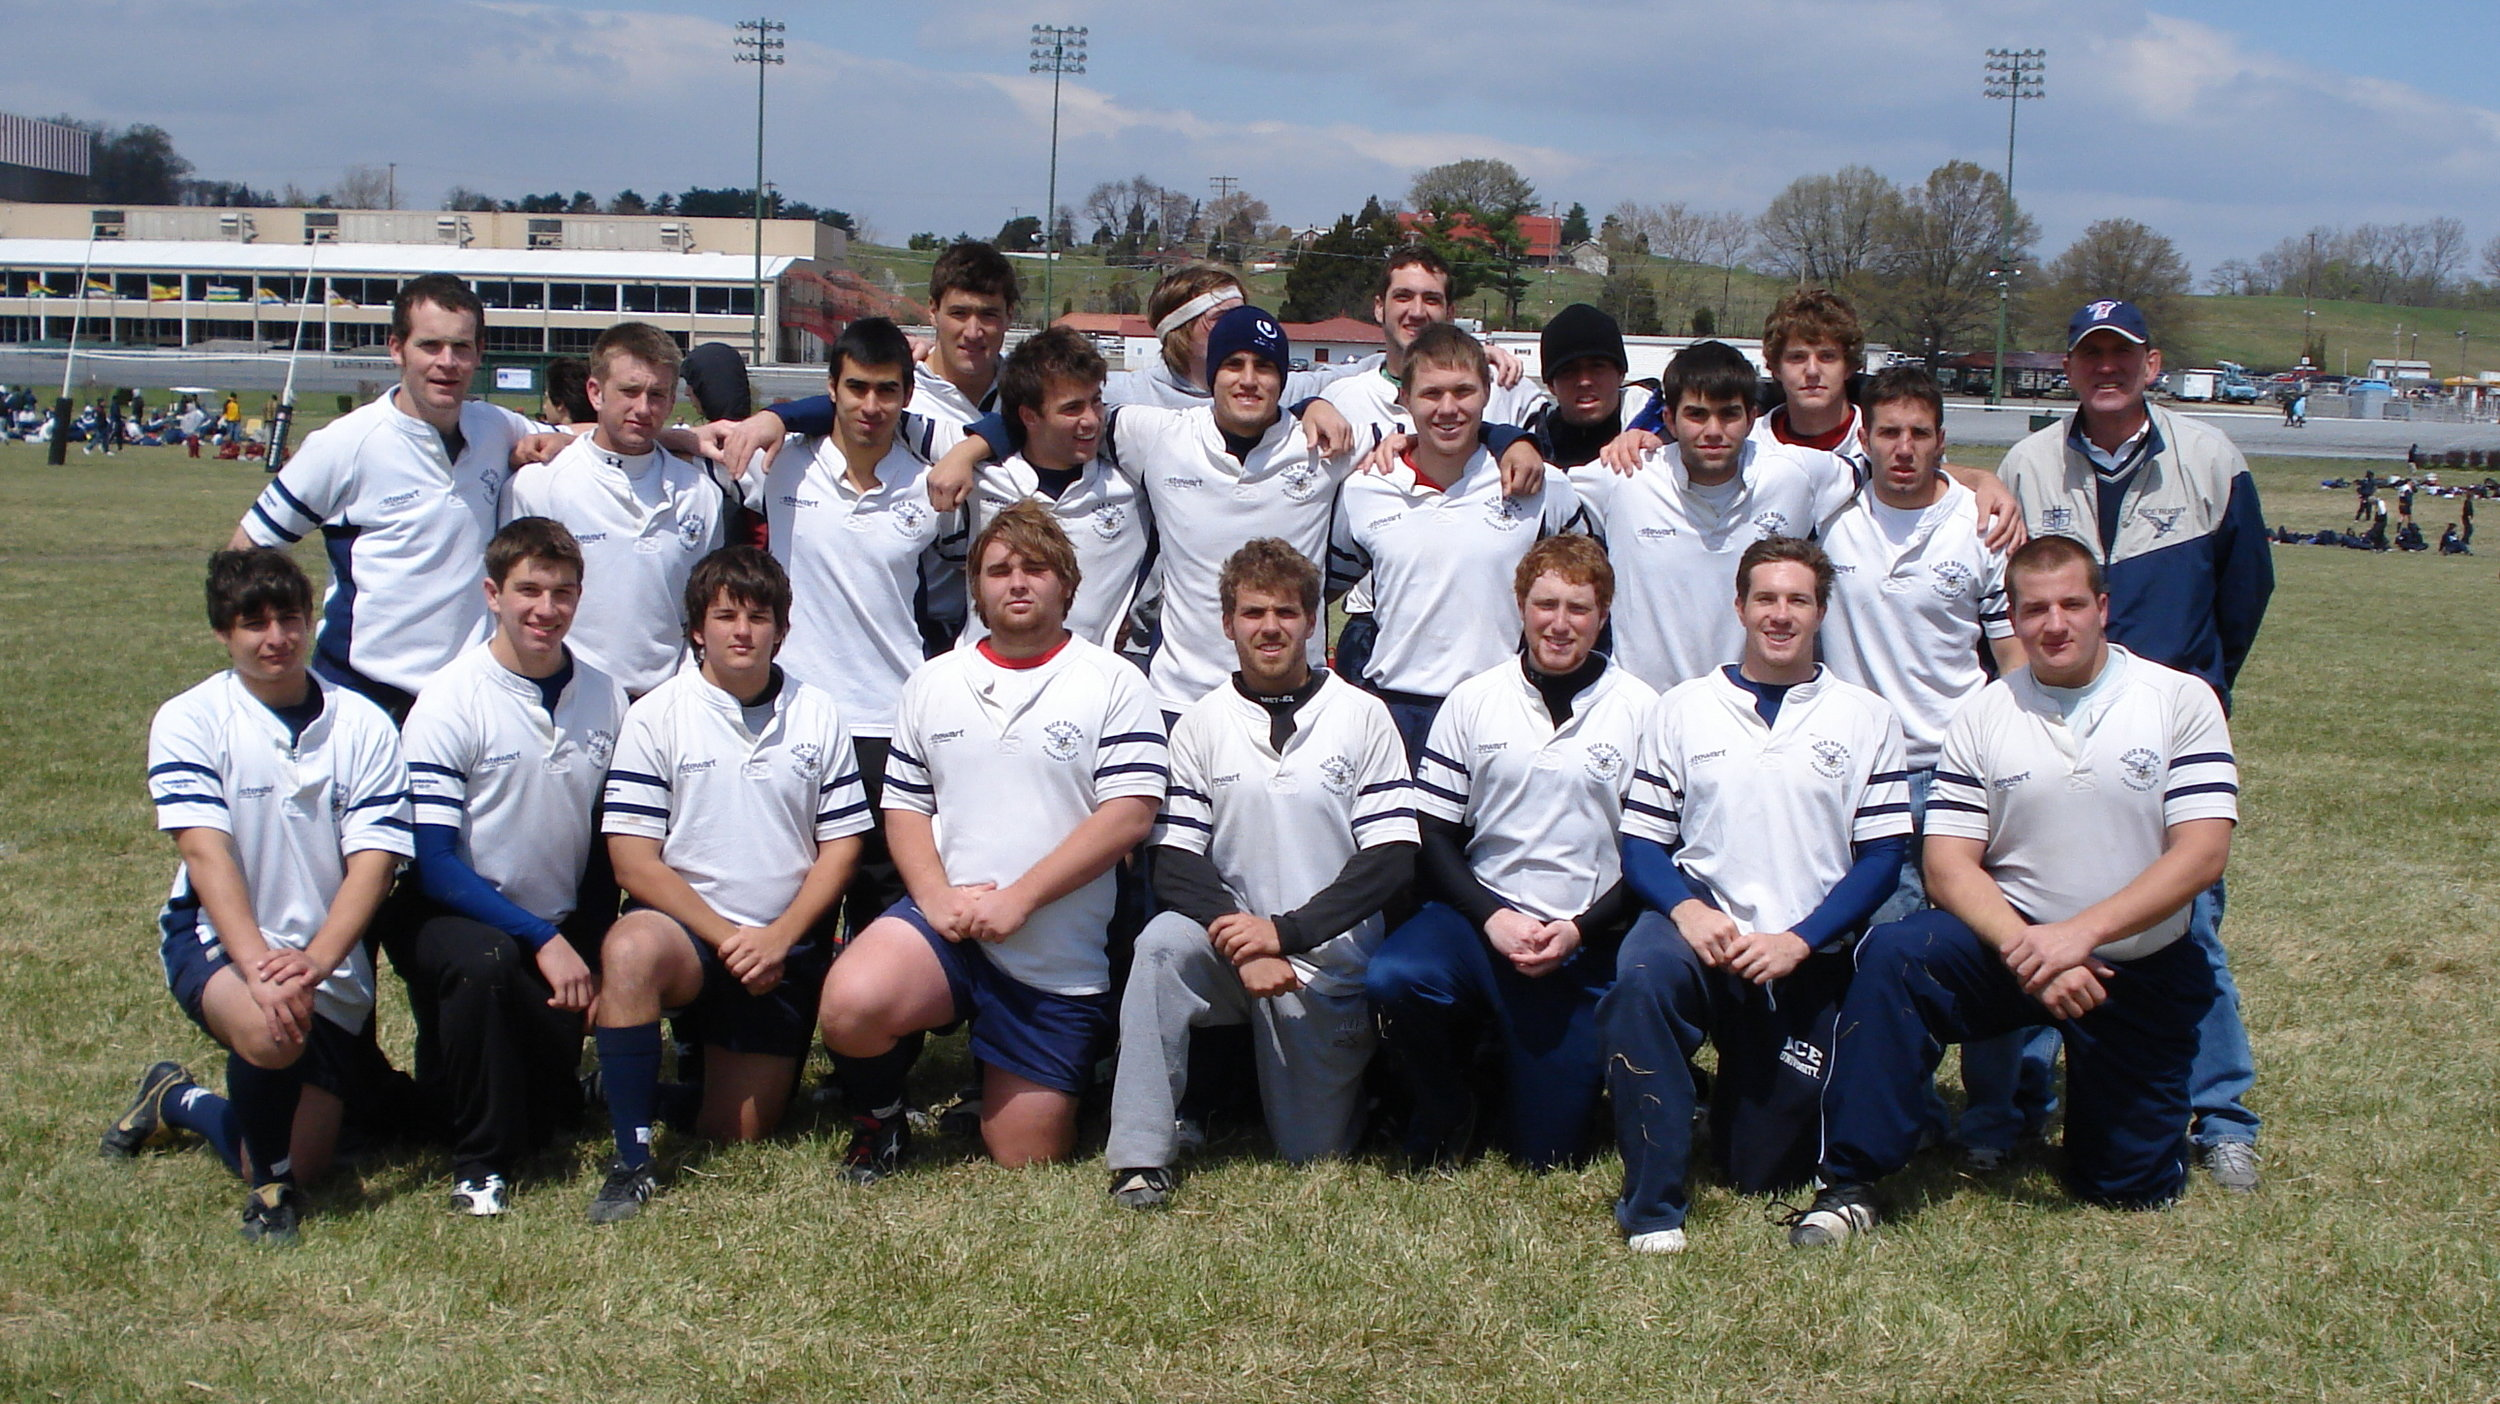 2007.82 Team Photo Field.JPG